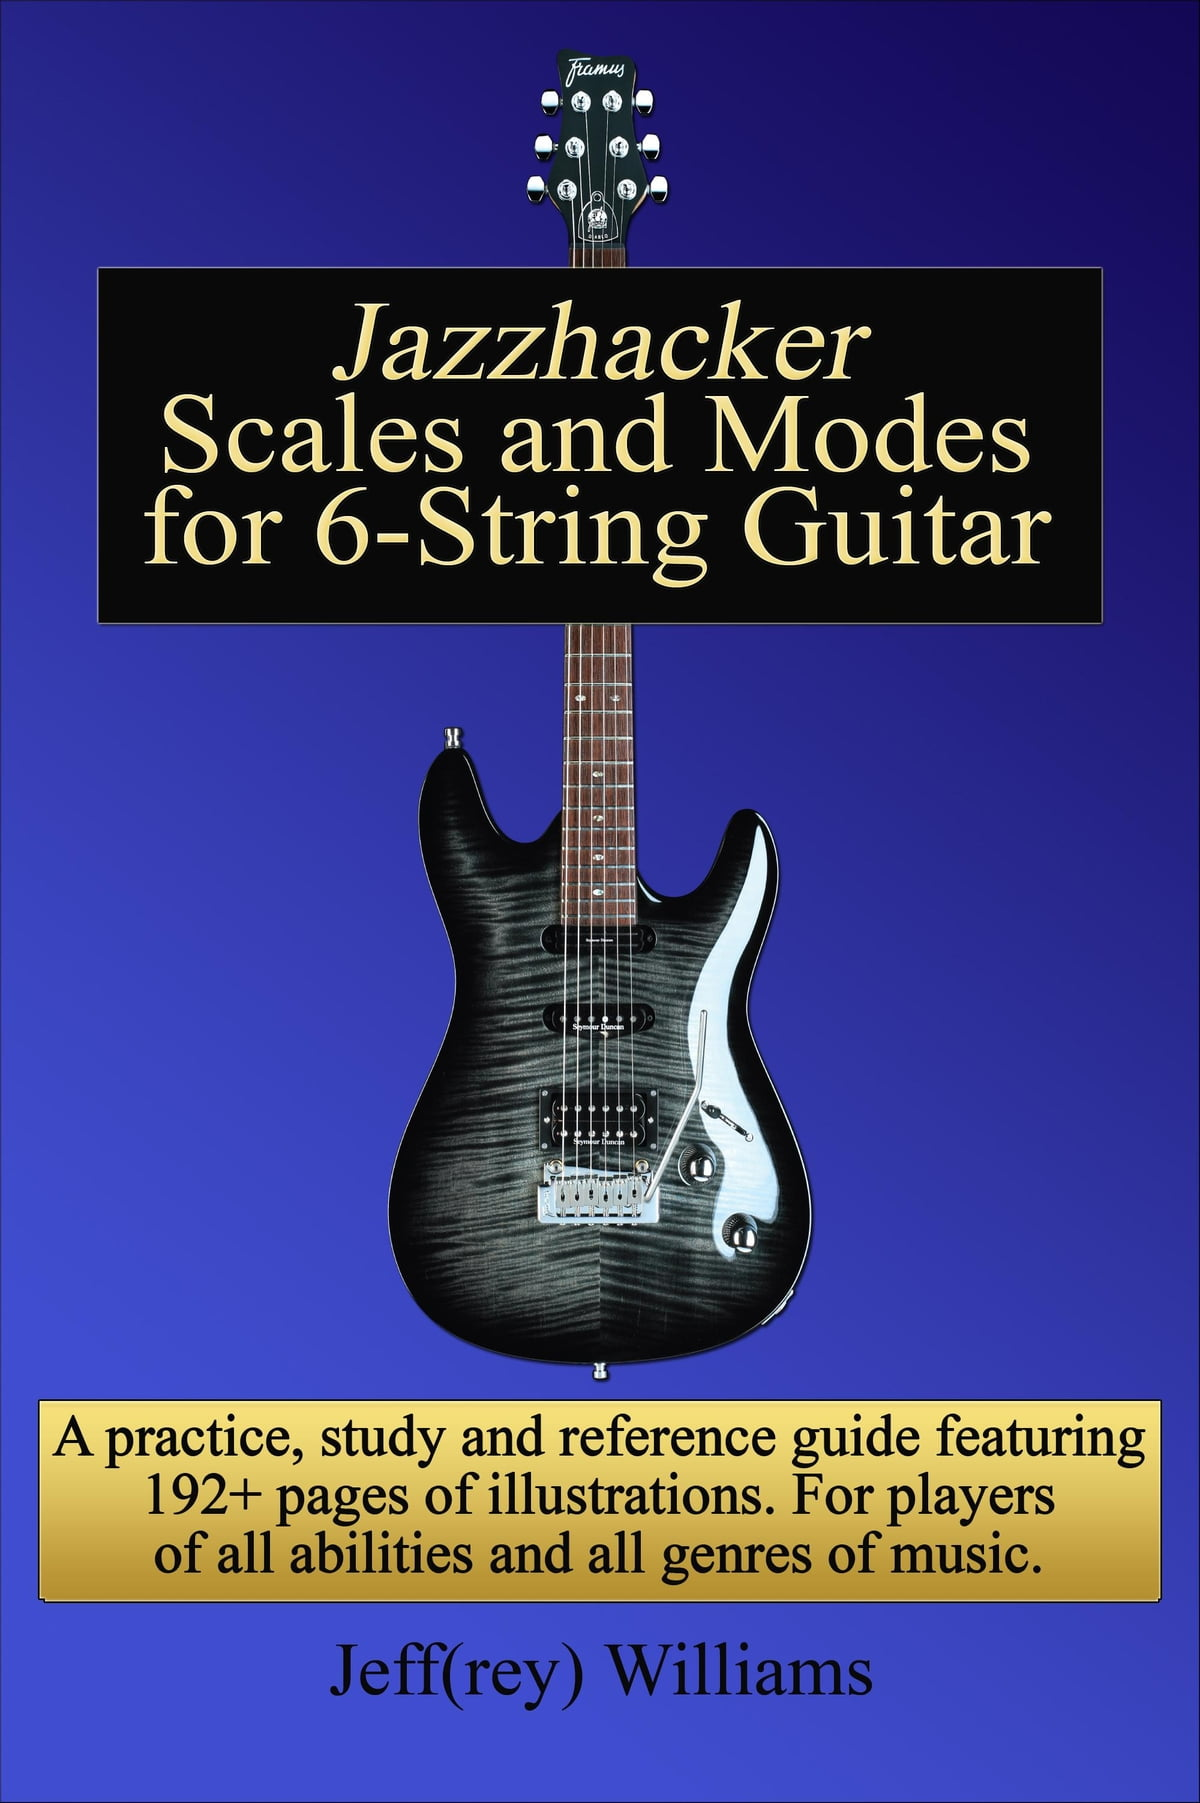 Jazzhacker Scales and Modes for 6-String Guitar eBook by